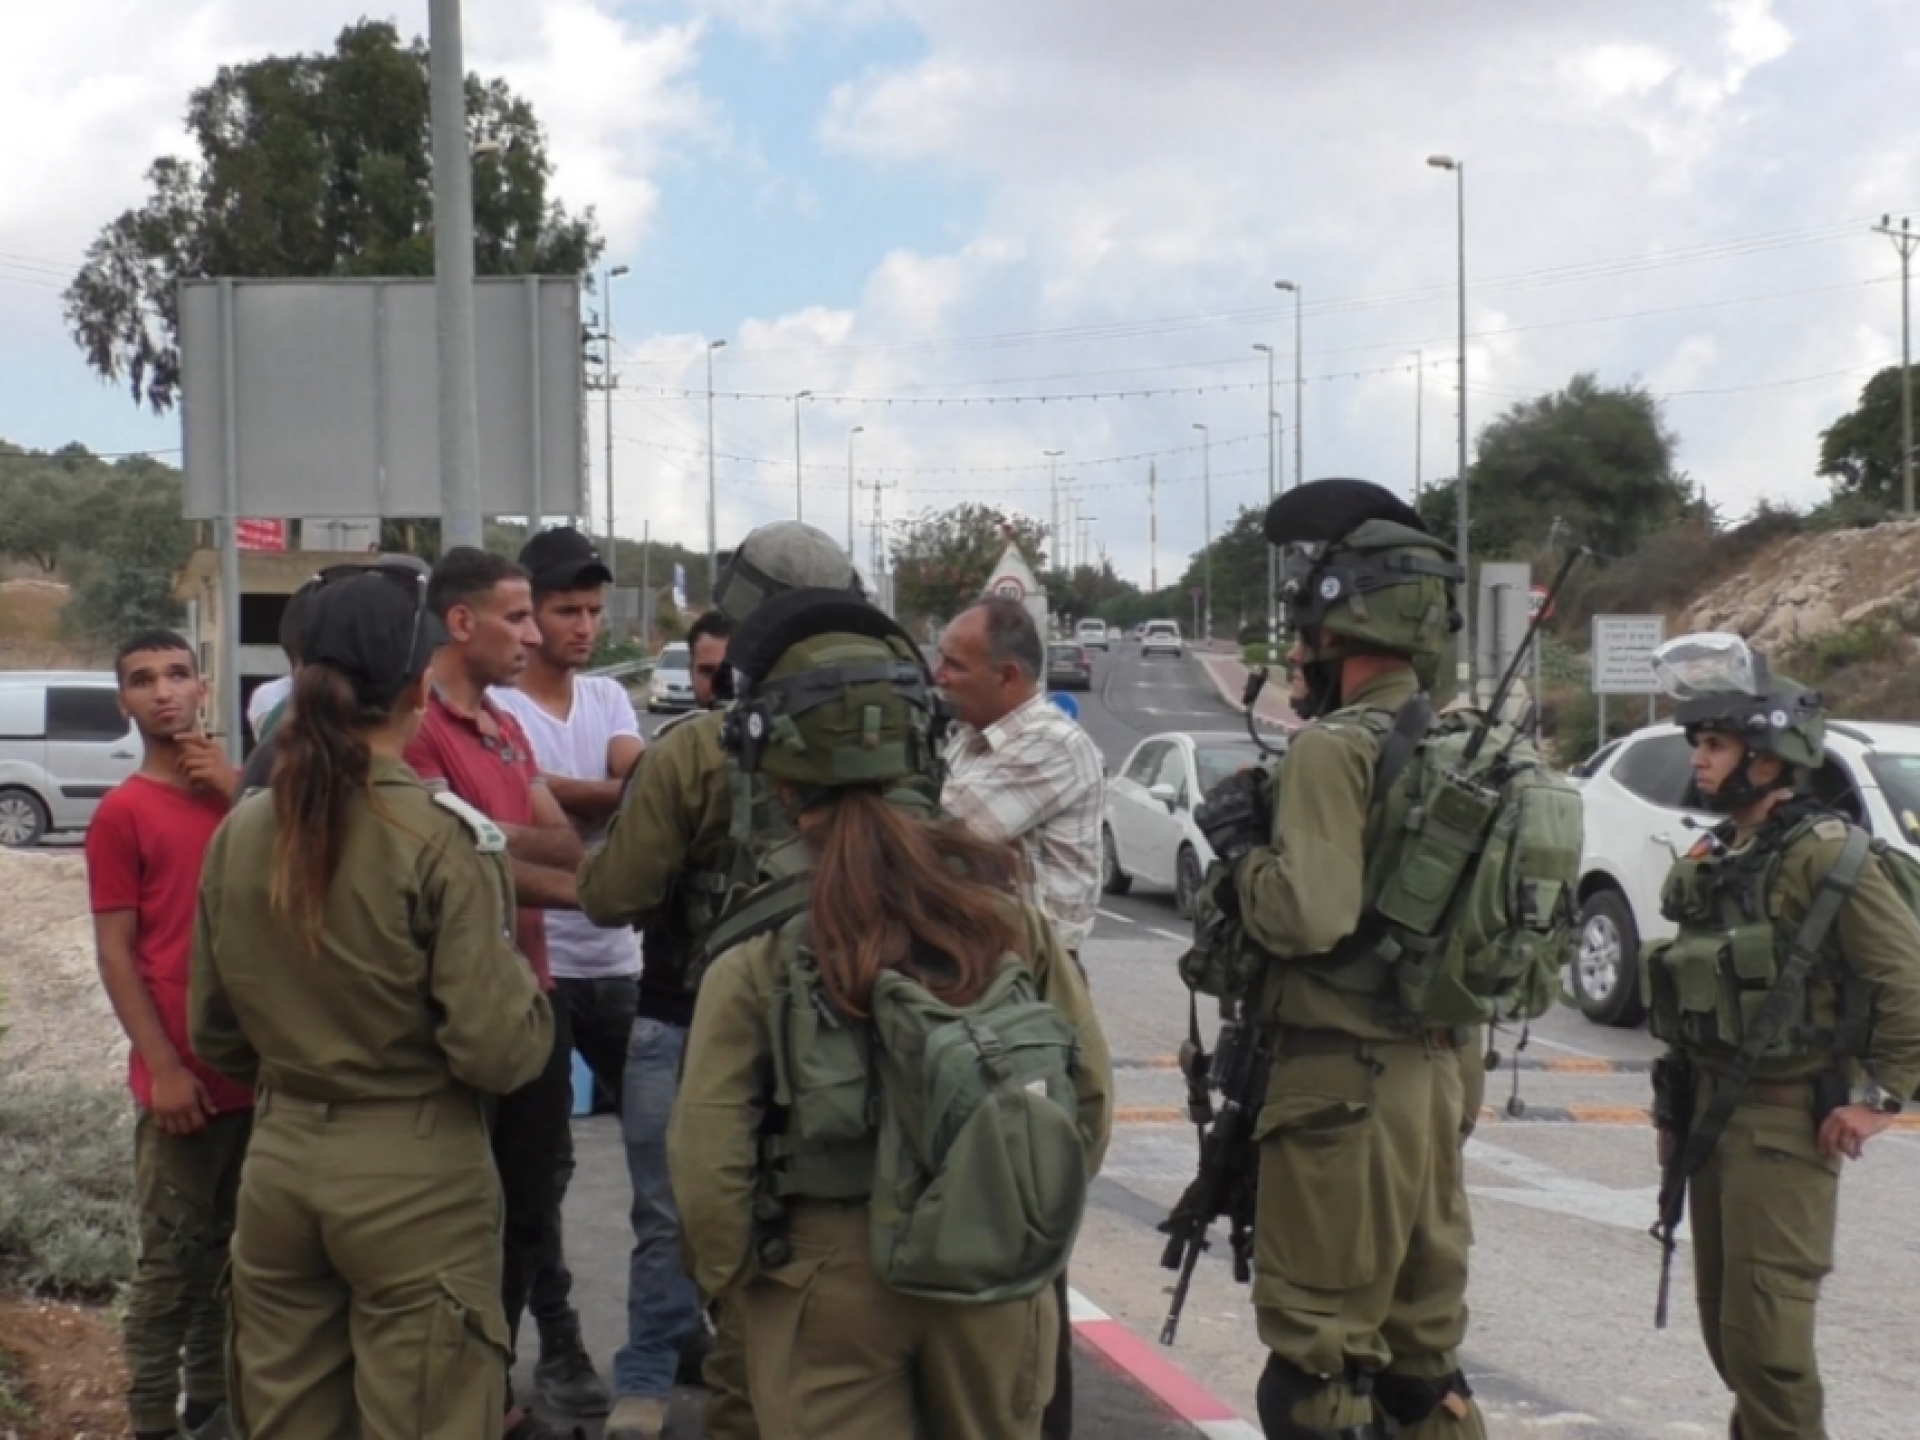 A discussion ensued between the uniformed personnel and the Palestinians and activists